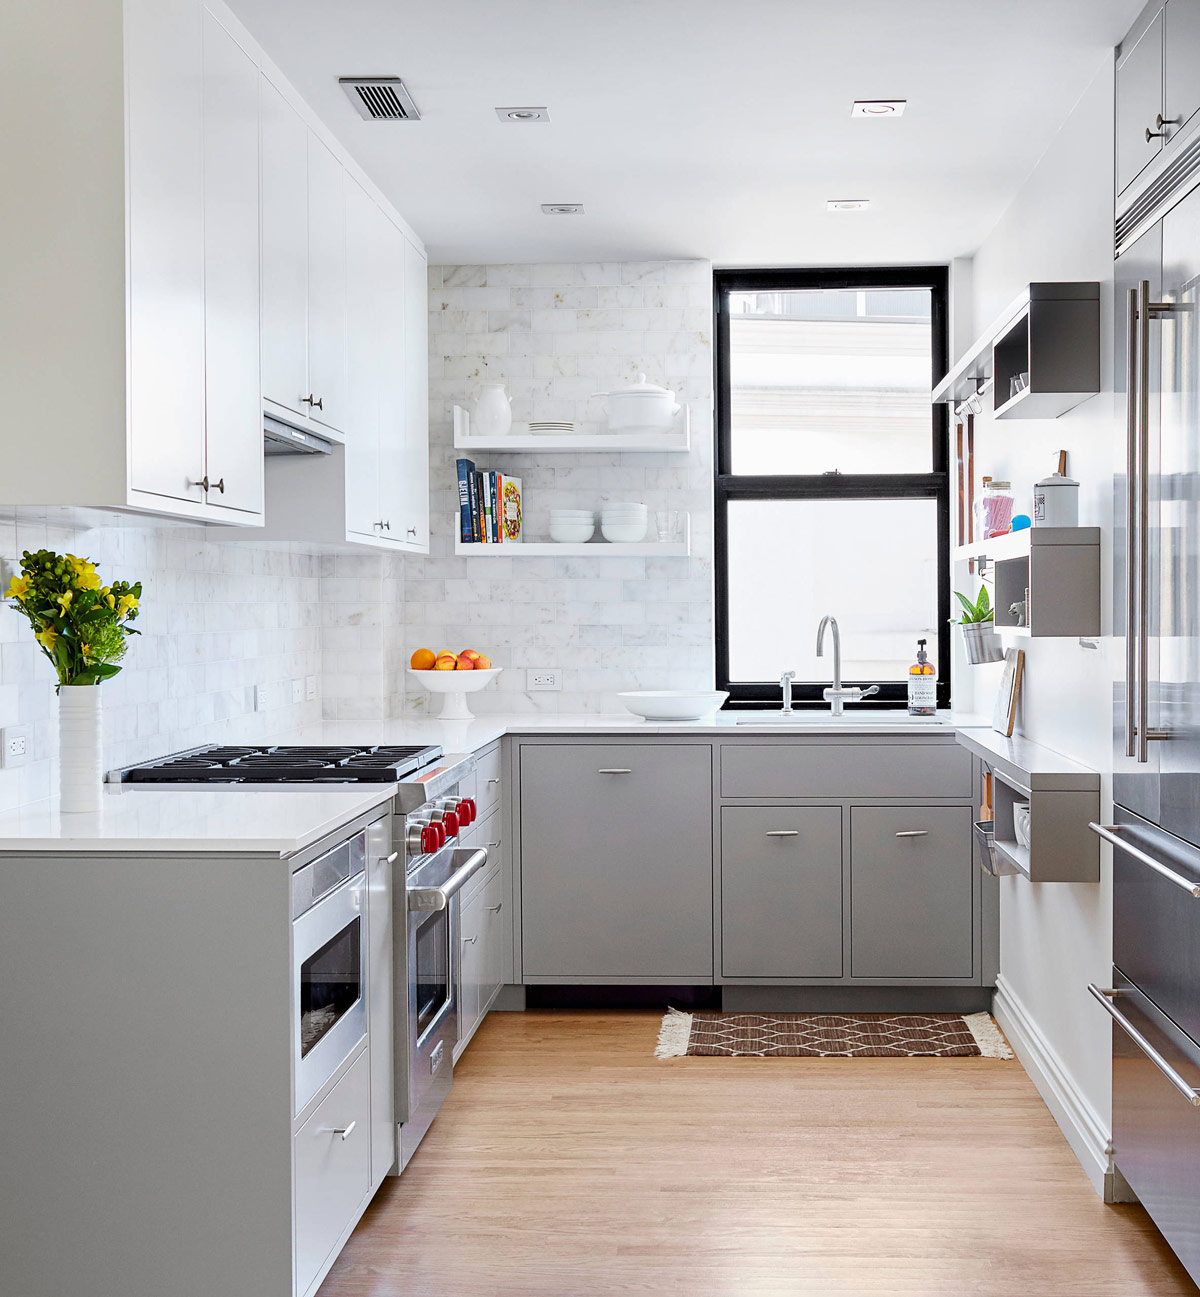 Grey-and-Stainless-Steel-Kitchen-White-Counters-and-Mix-Backsplash.jpg